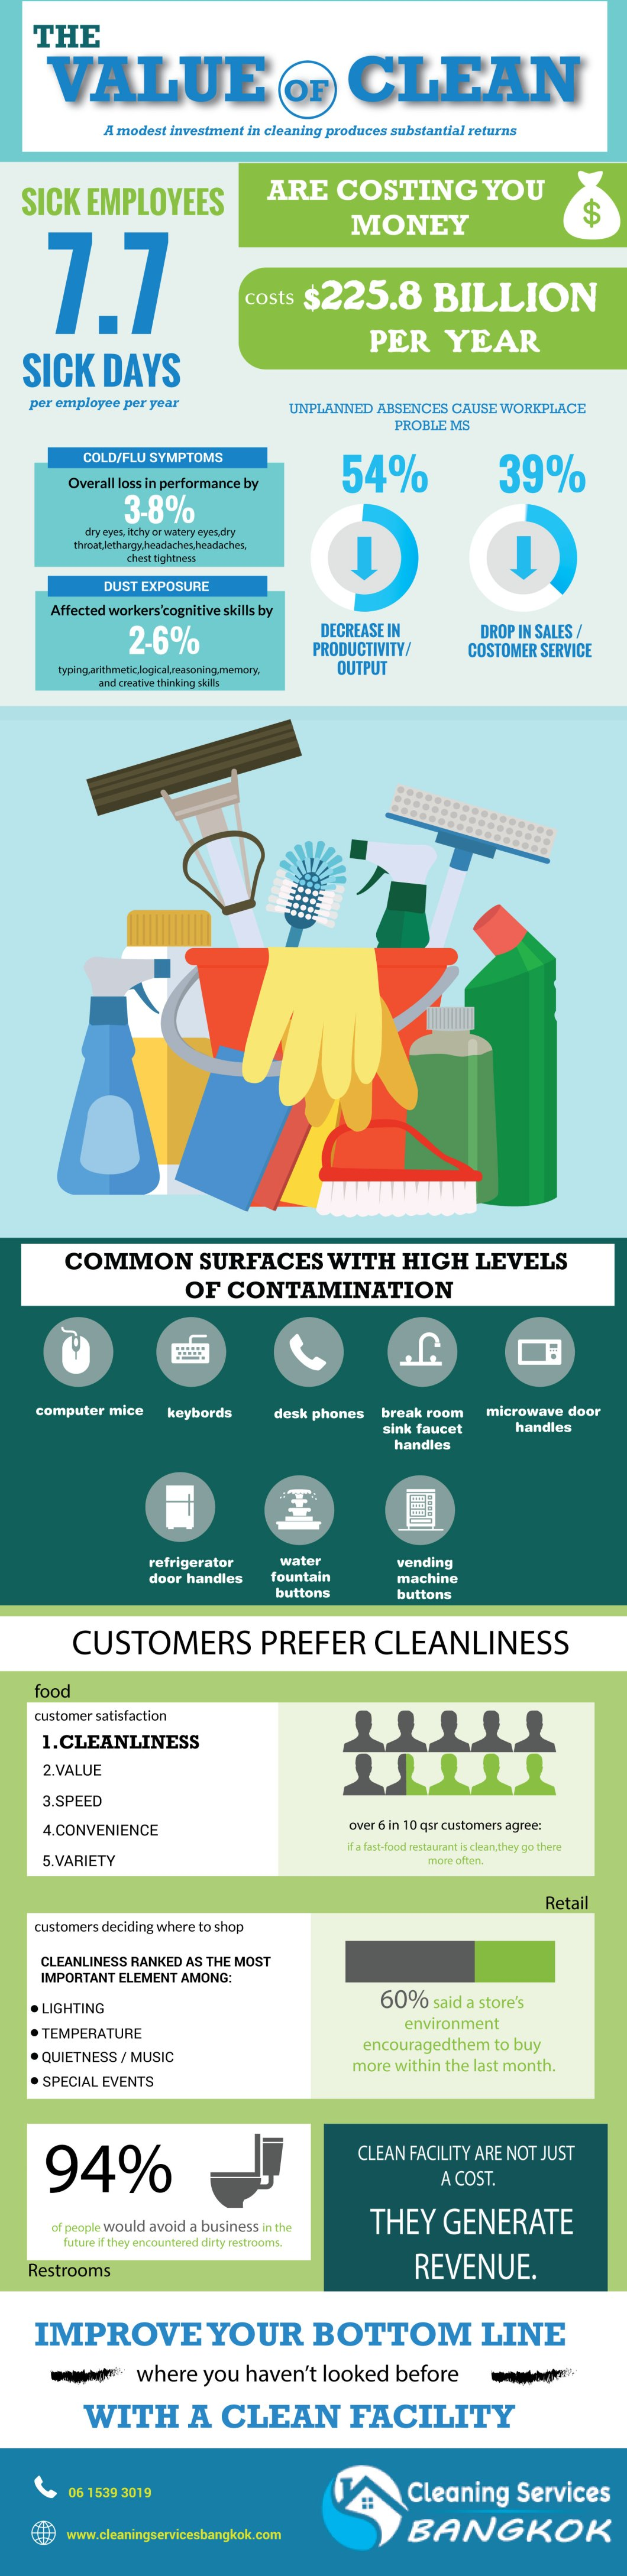 How to Improve Your Bottomline by Cleaning Up! - Infographic